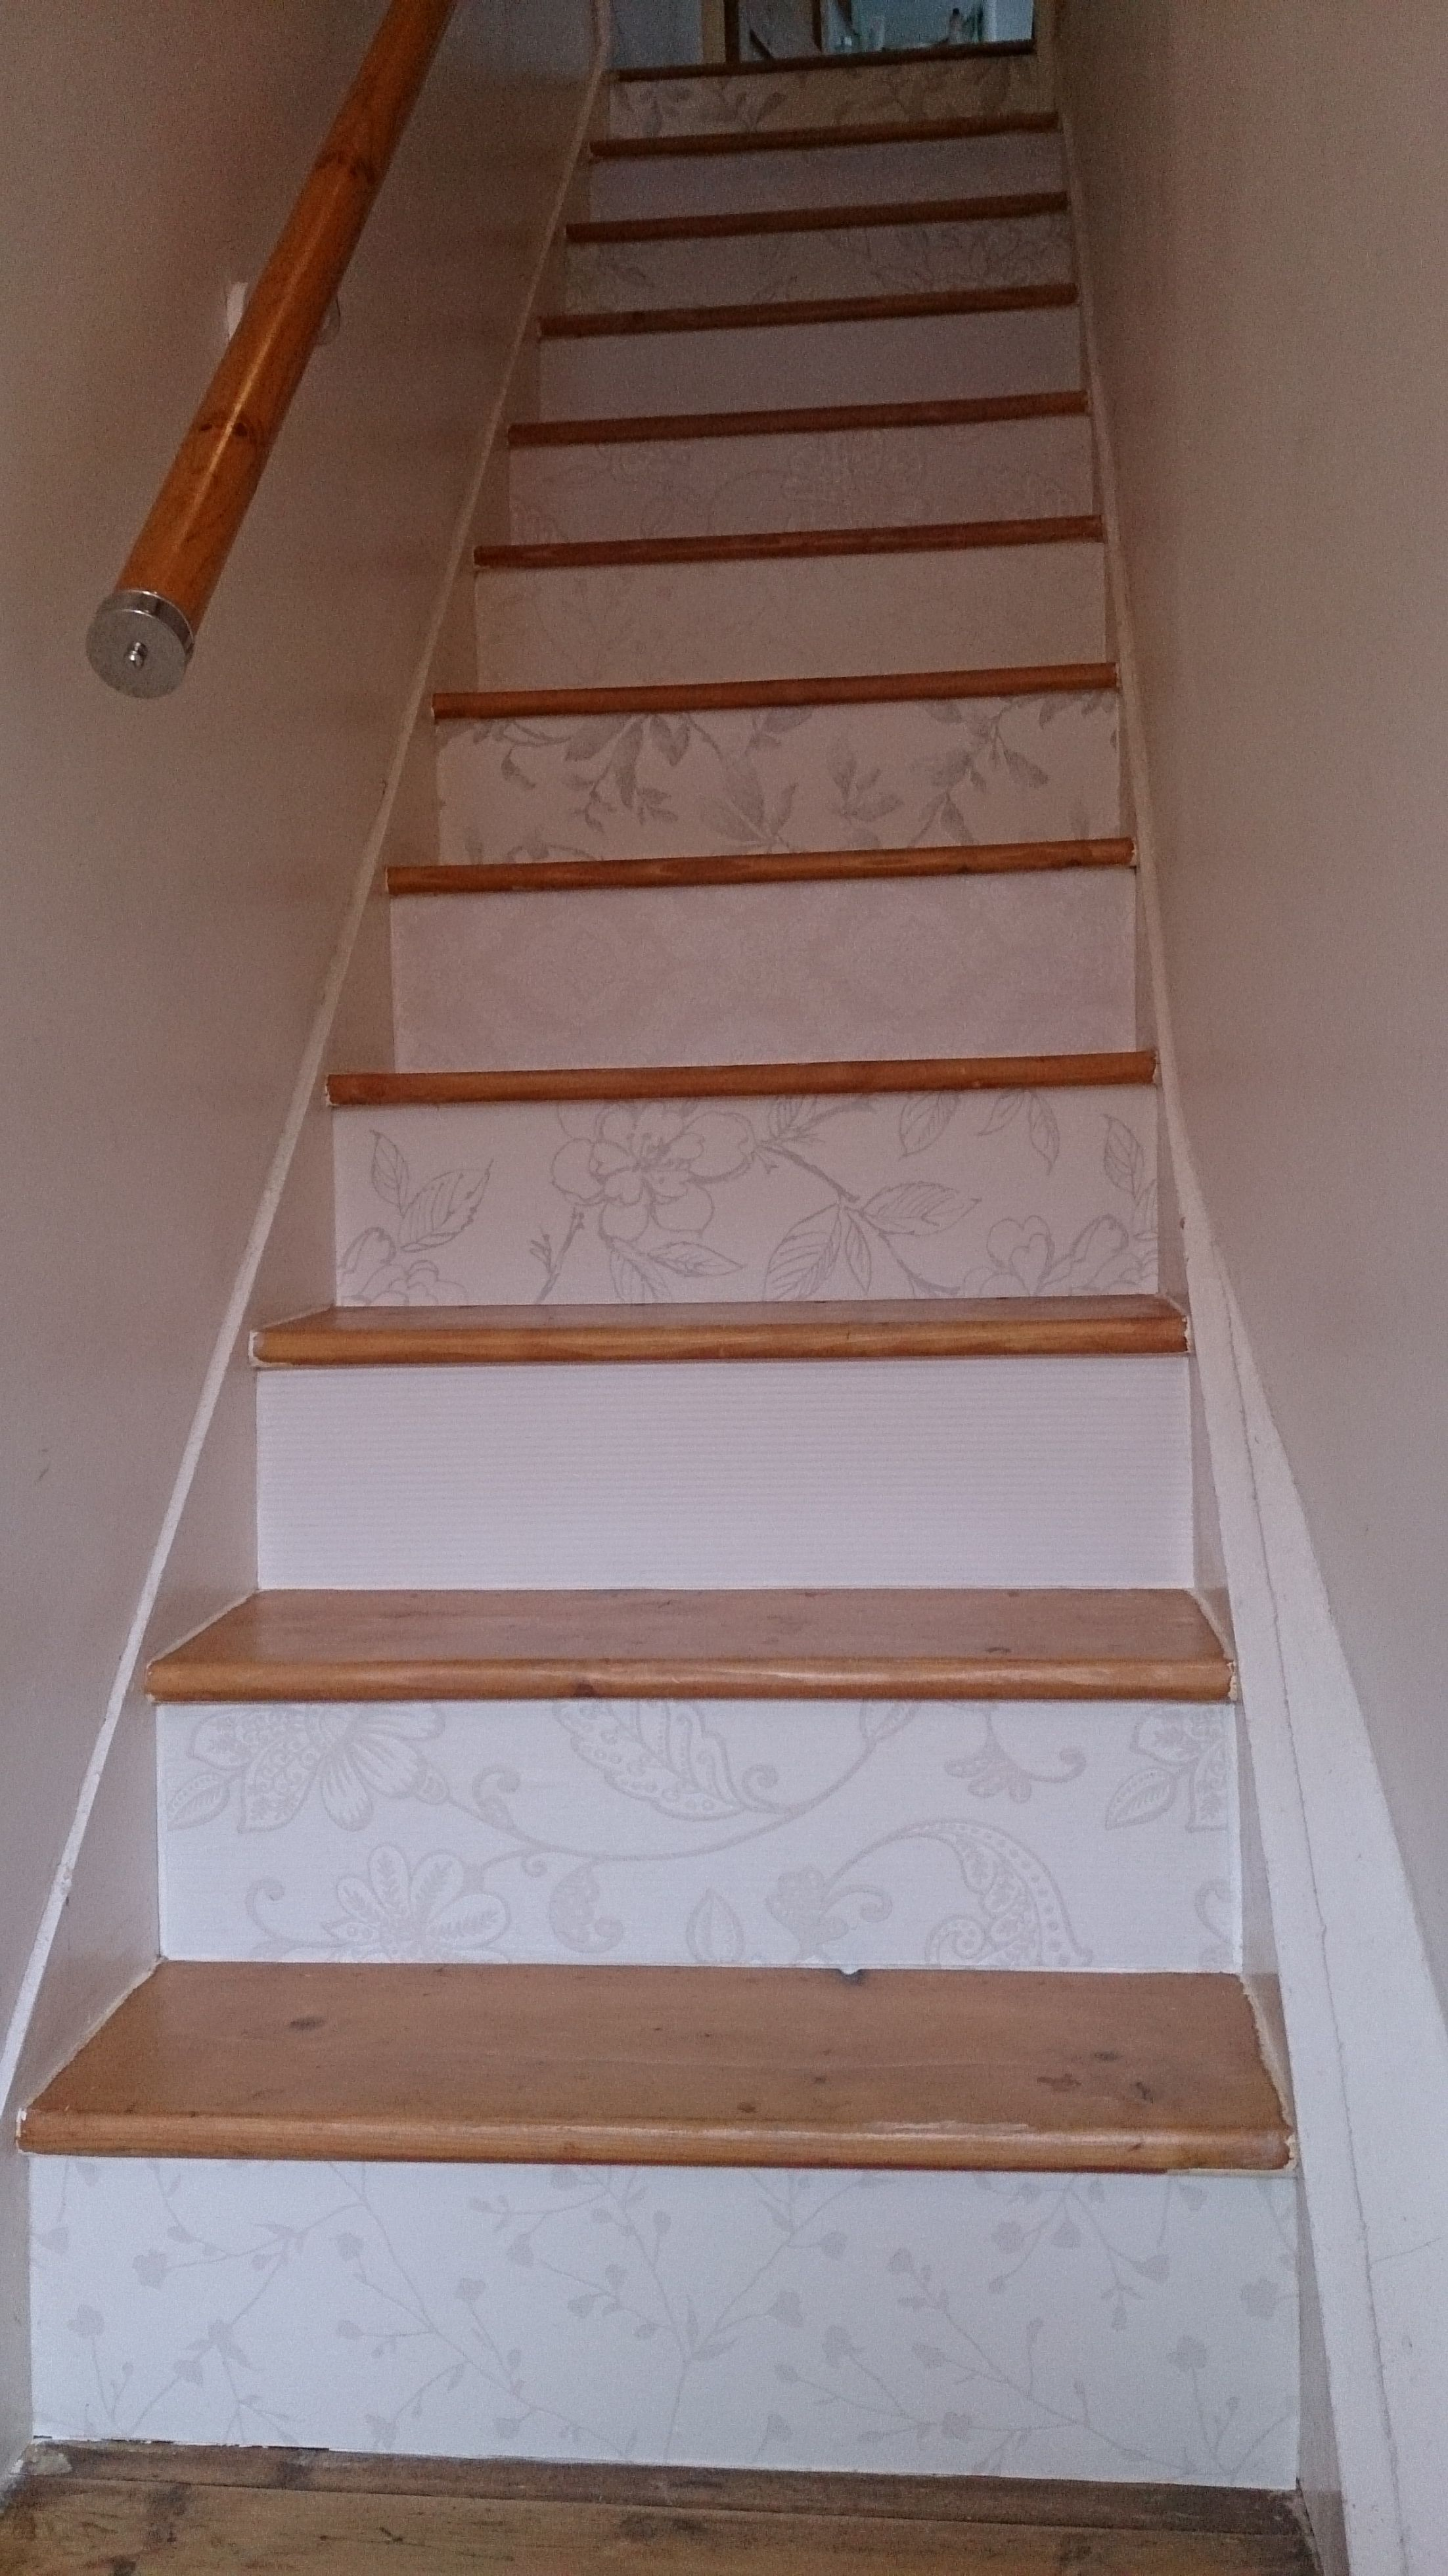 Wallpapered Stairs o) [use free wallpaper samples